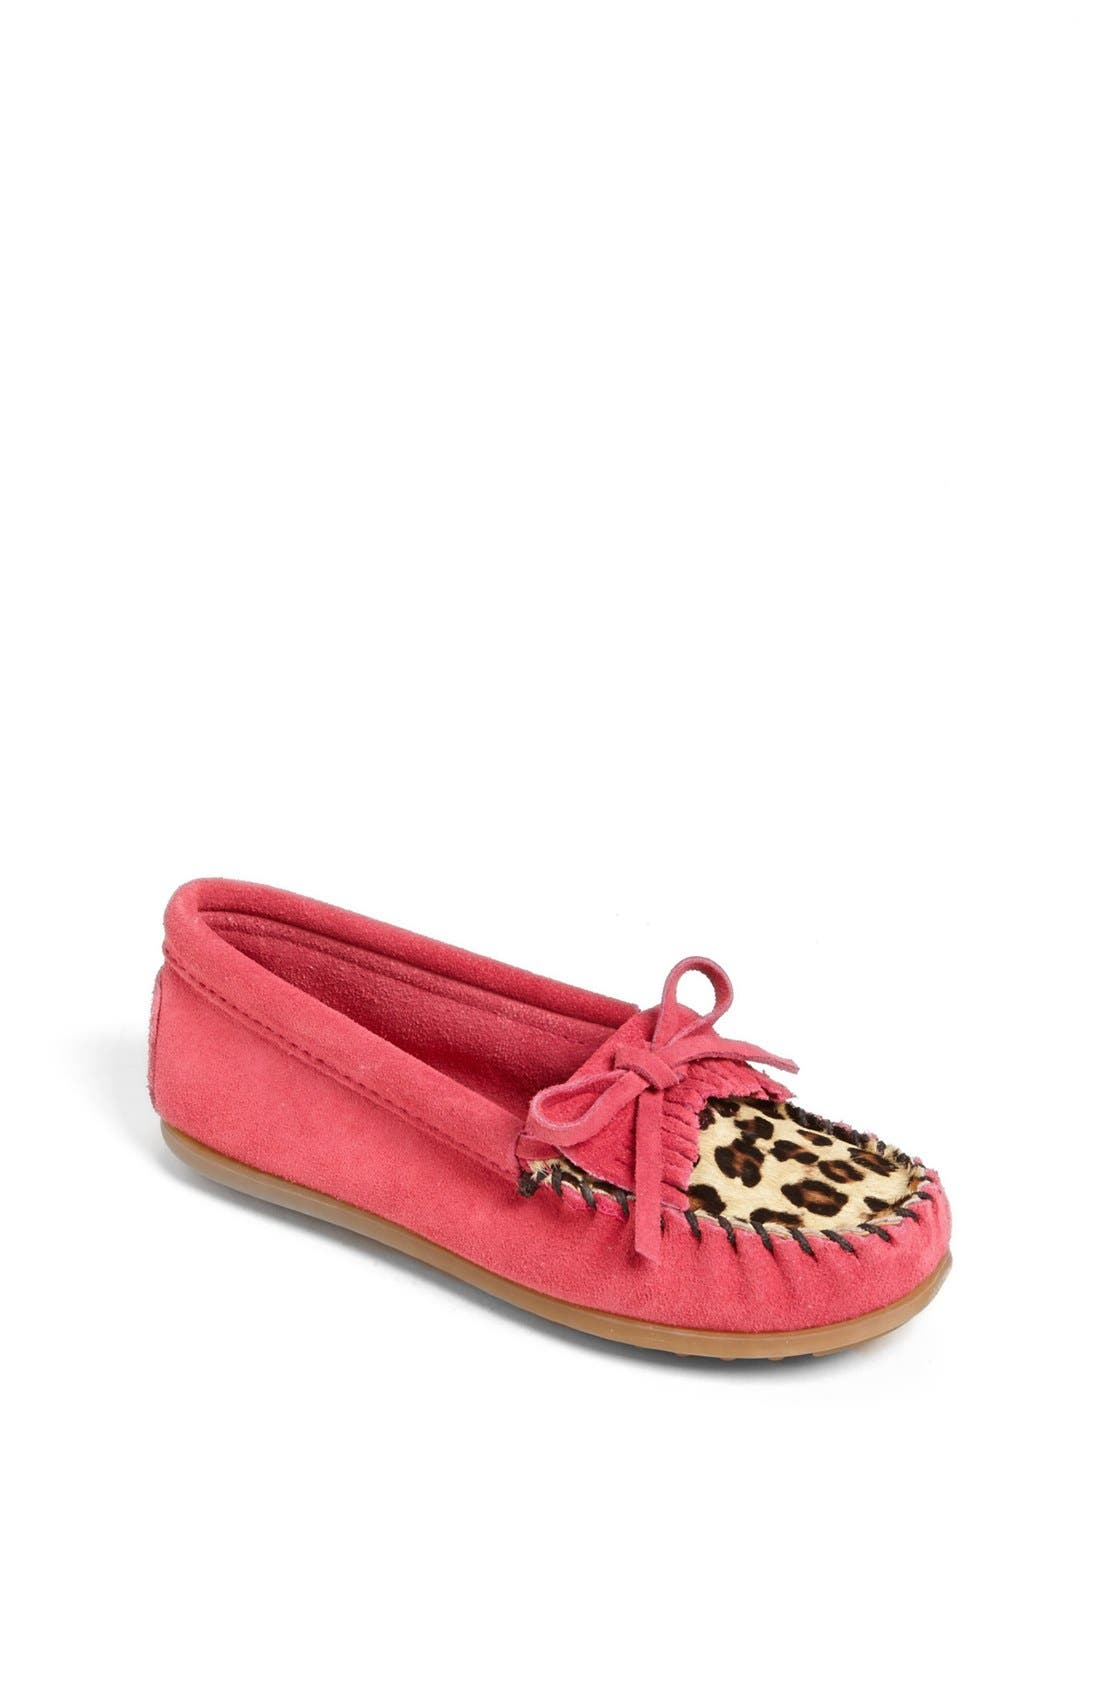 Main Image - Minnetonka 'Kilty - Leopard' Moccasin (Walker, Toddler, Little Kid & Big Kid)